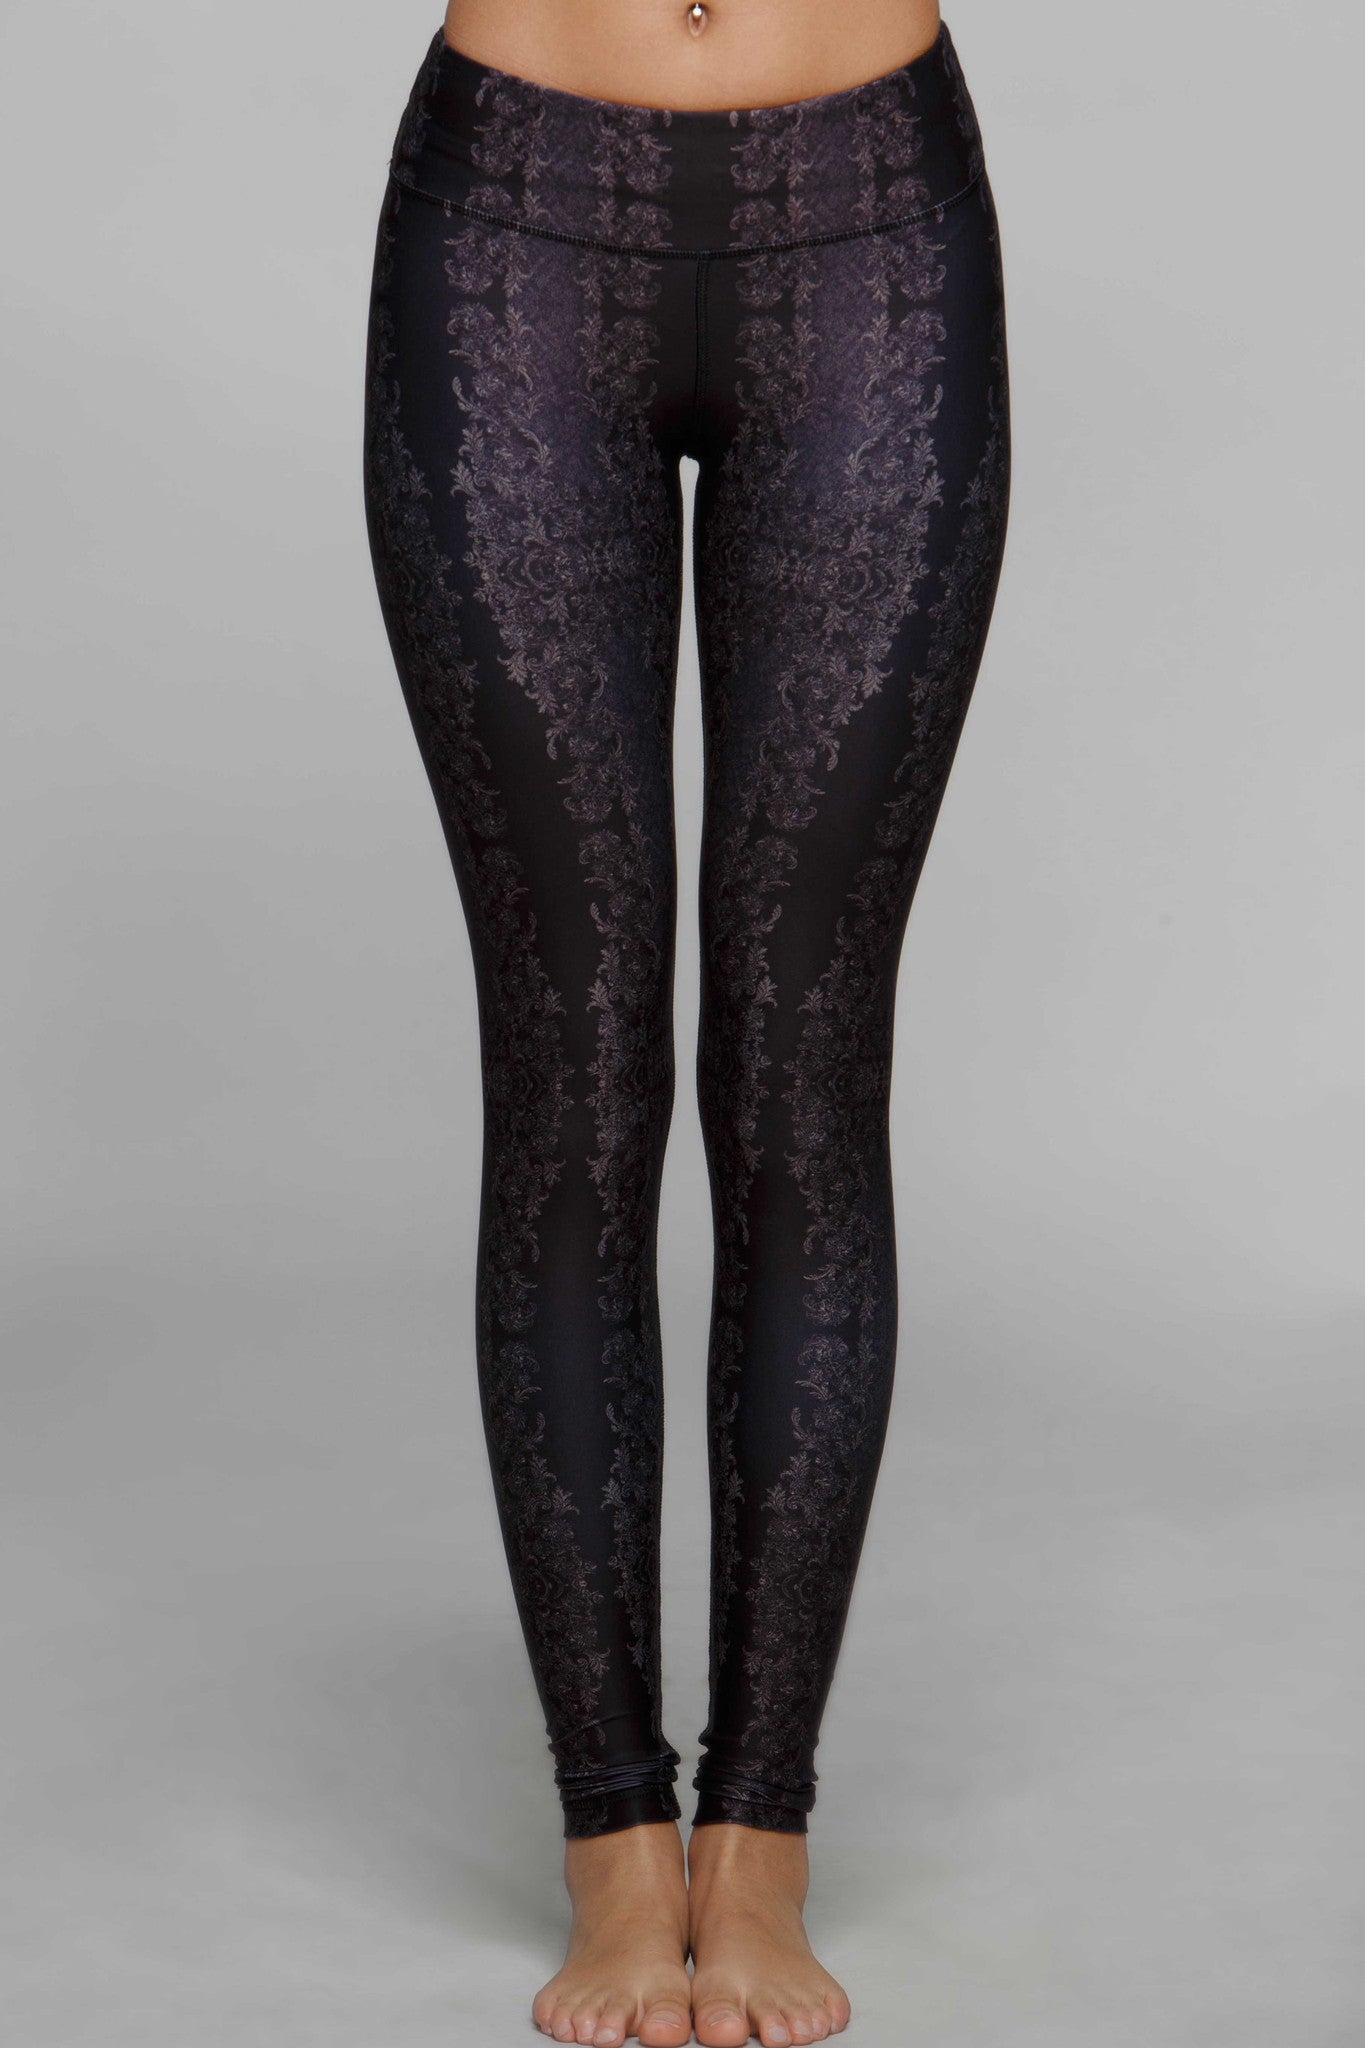 Lucky Graphic Legging - Victorian